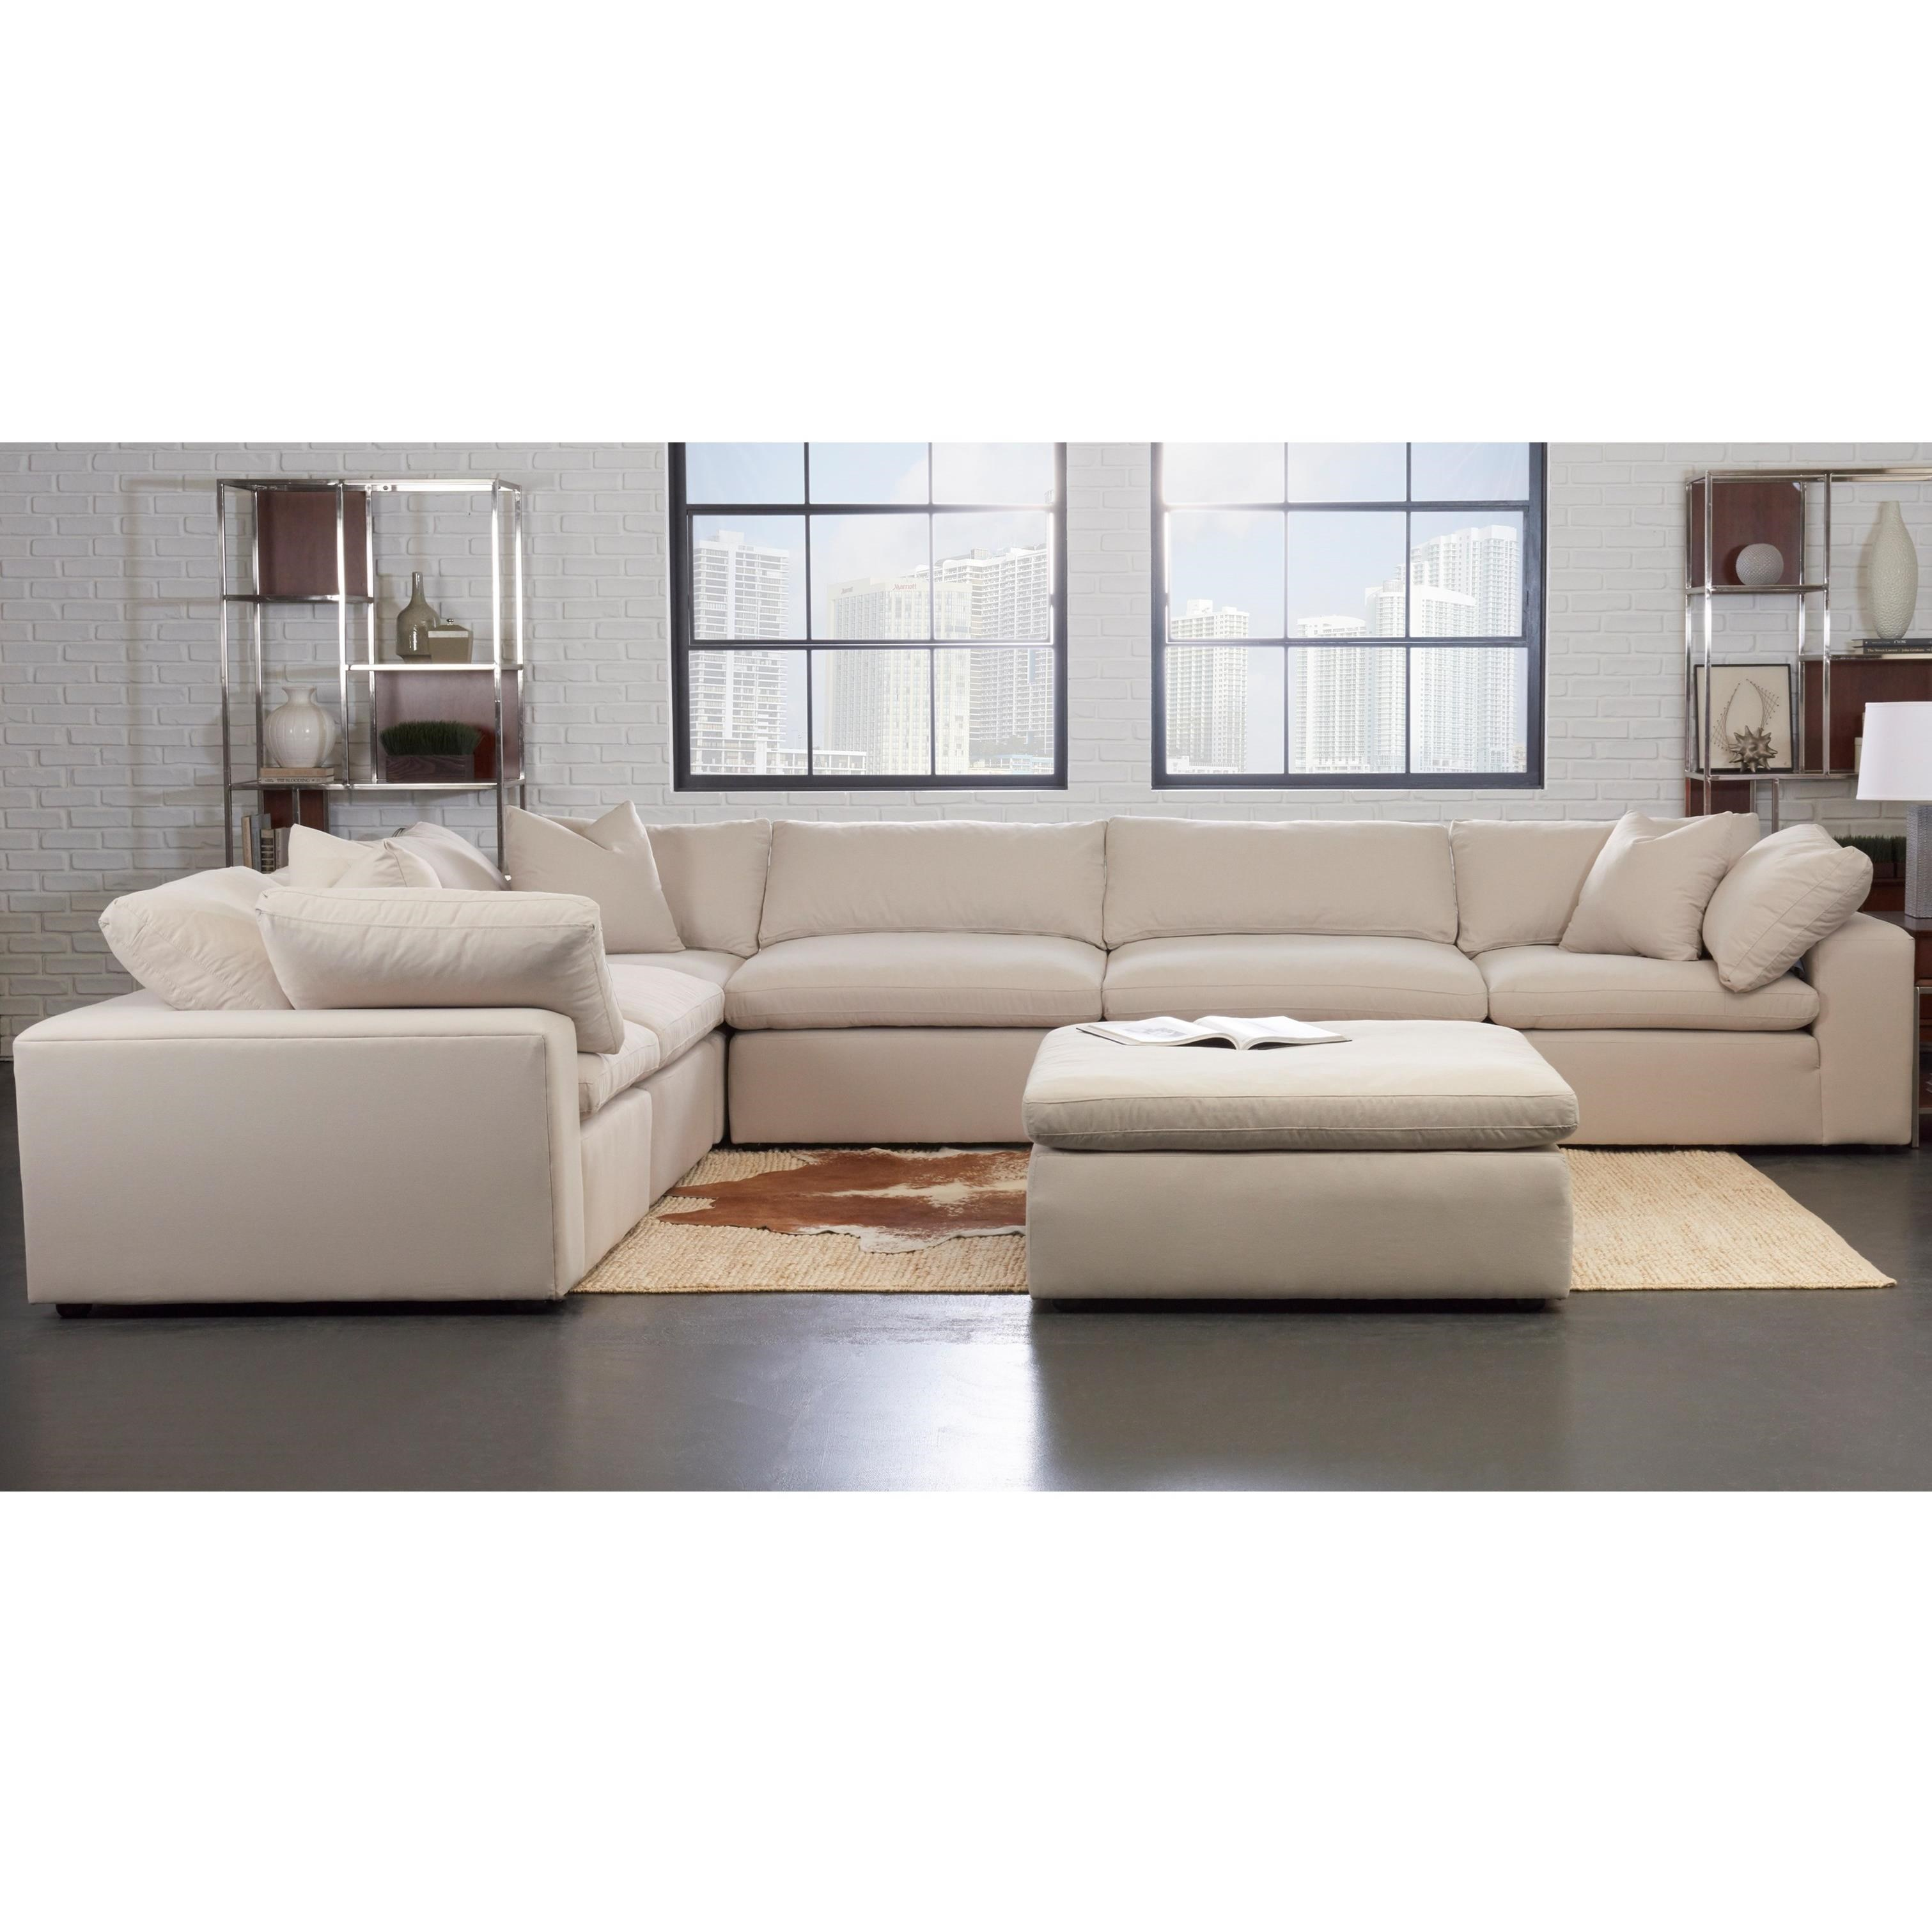 Modular Sofa Klaussner Monterey Contemporary 6 Pc Modular Sectional